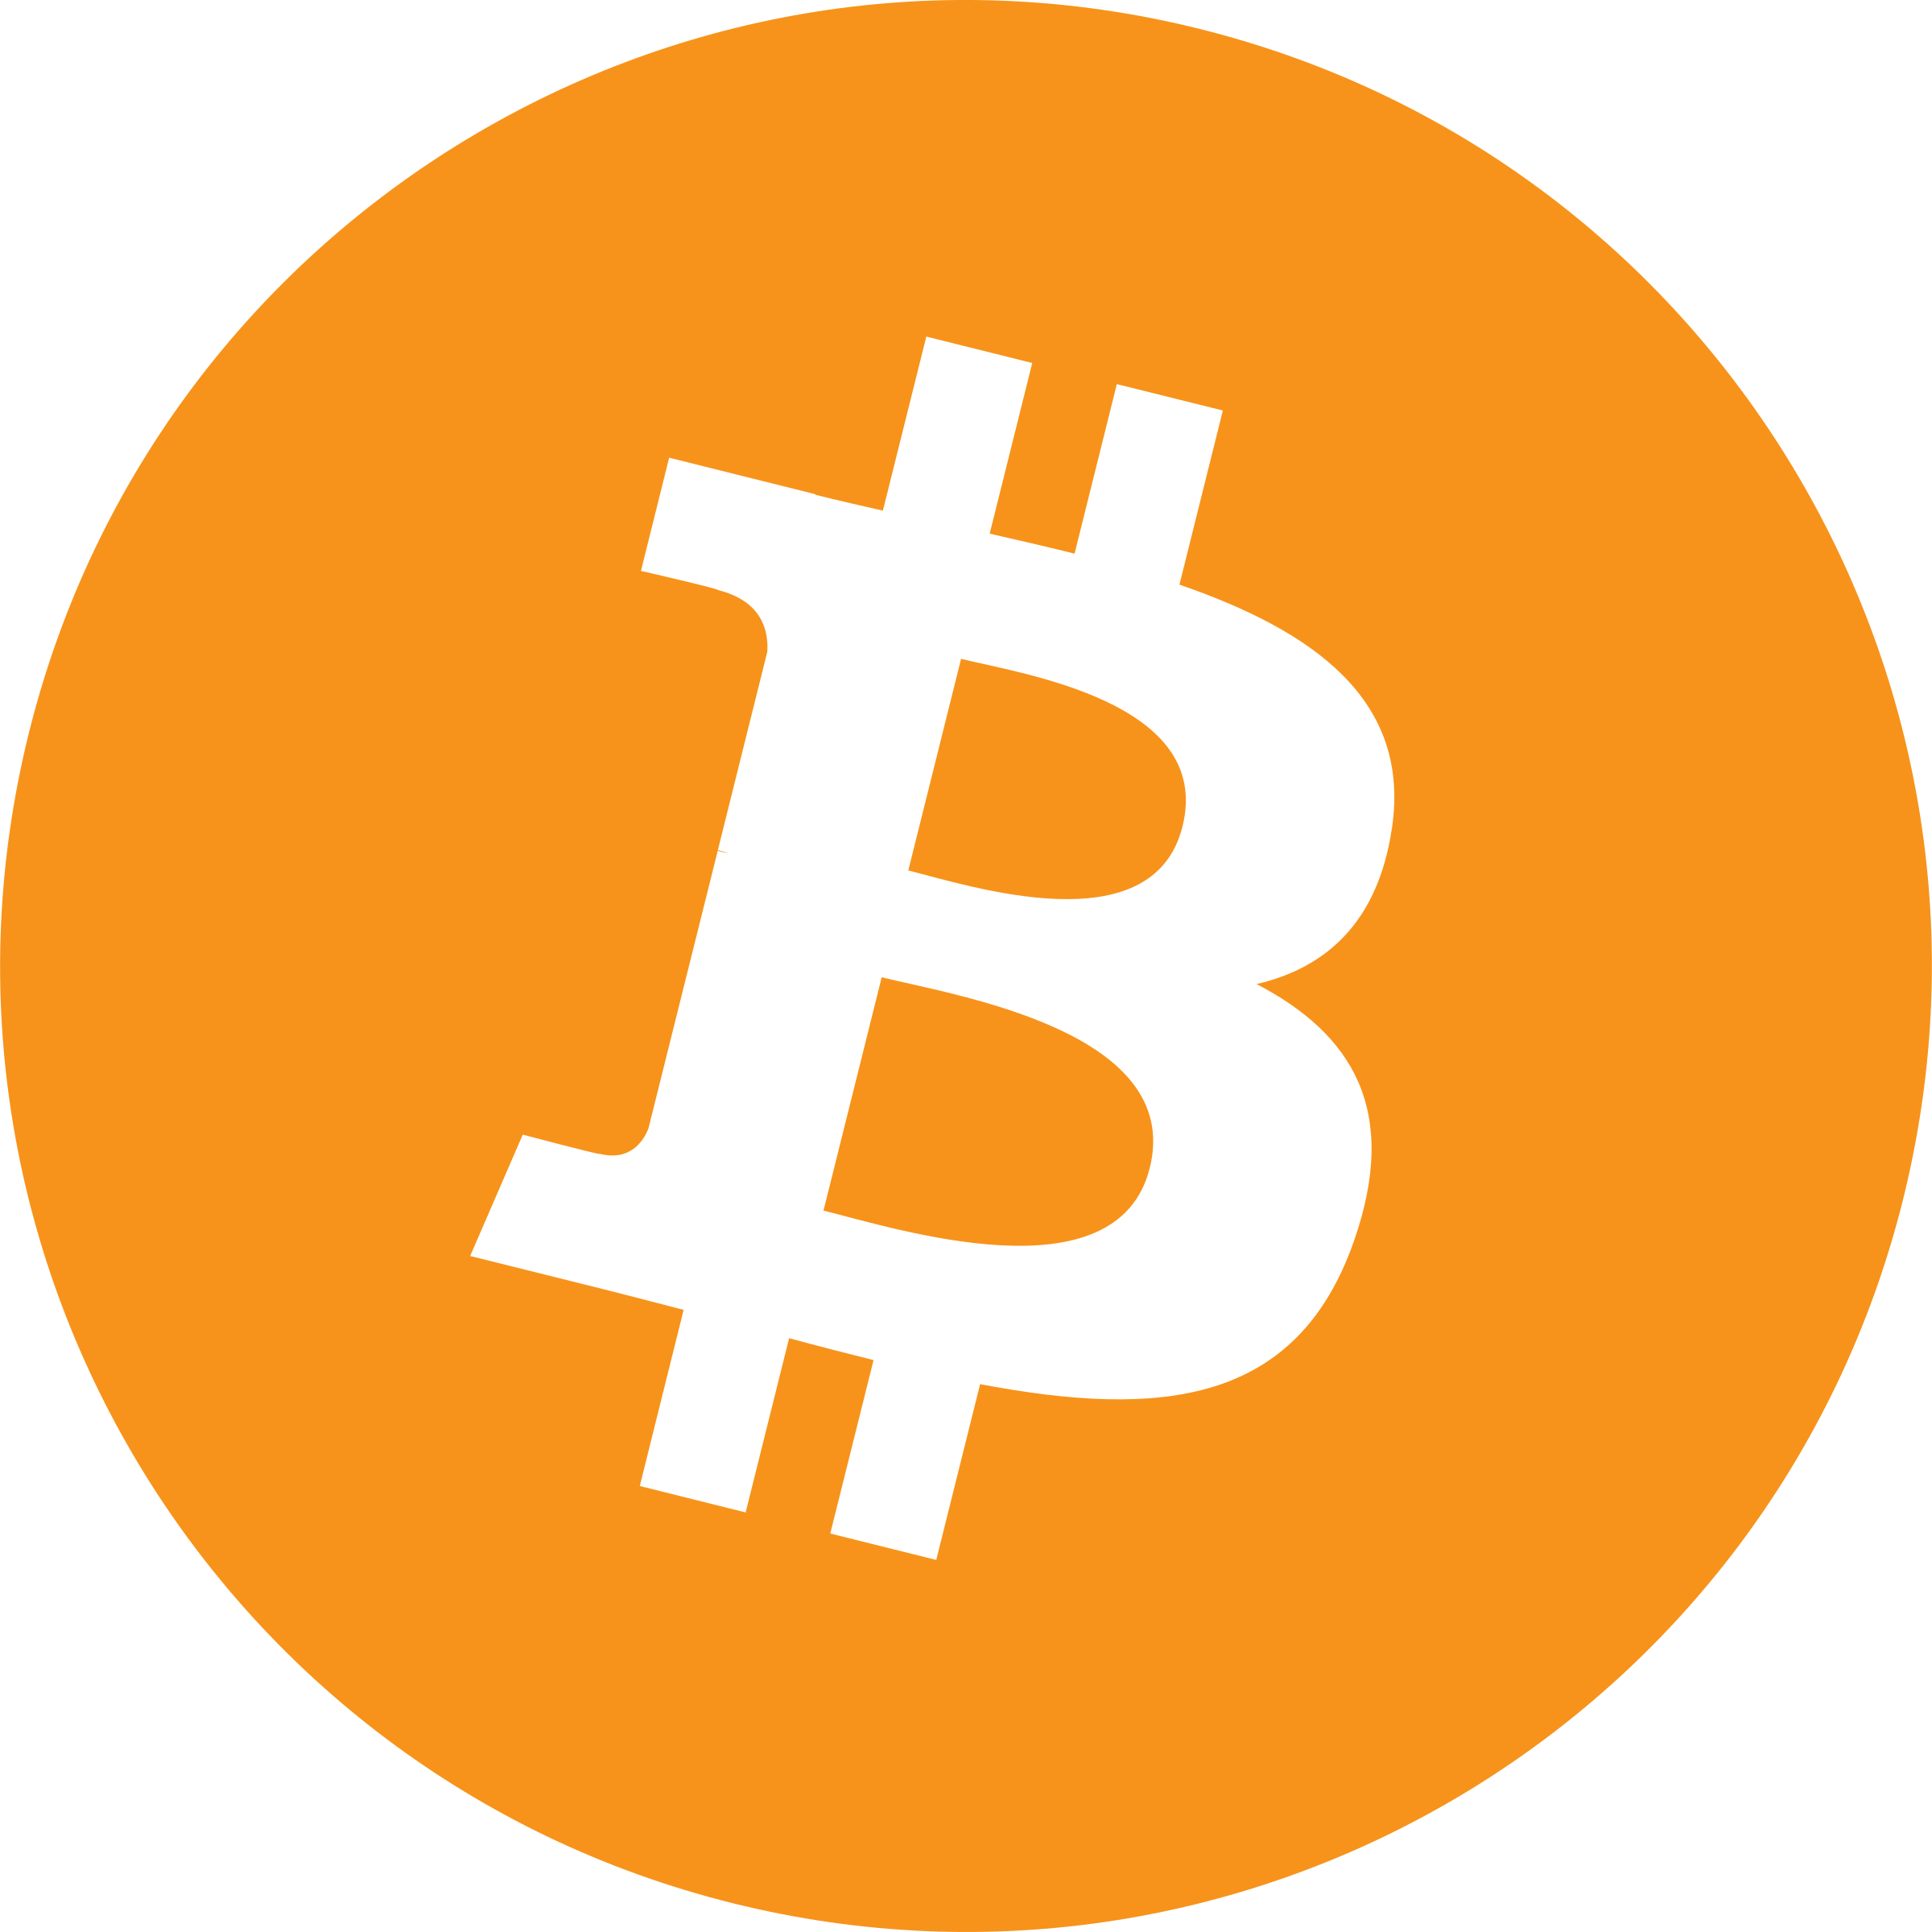 Bitcoin Logo PNG Transparent & SVG Vector - Freebie Supply